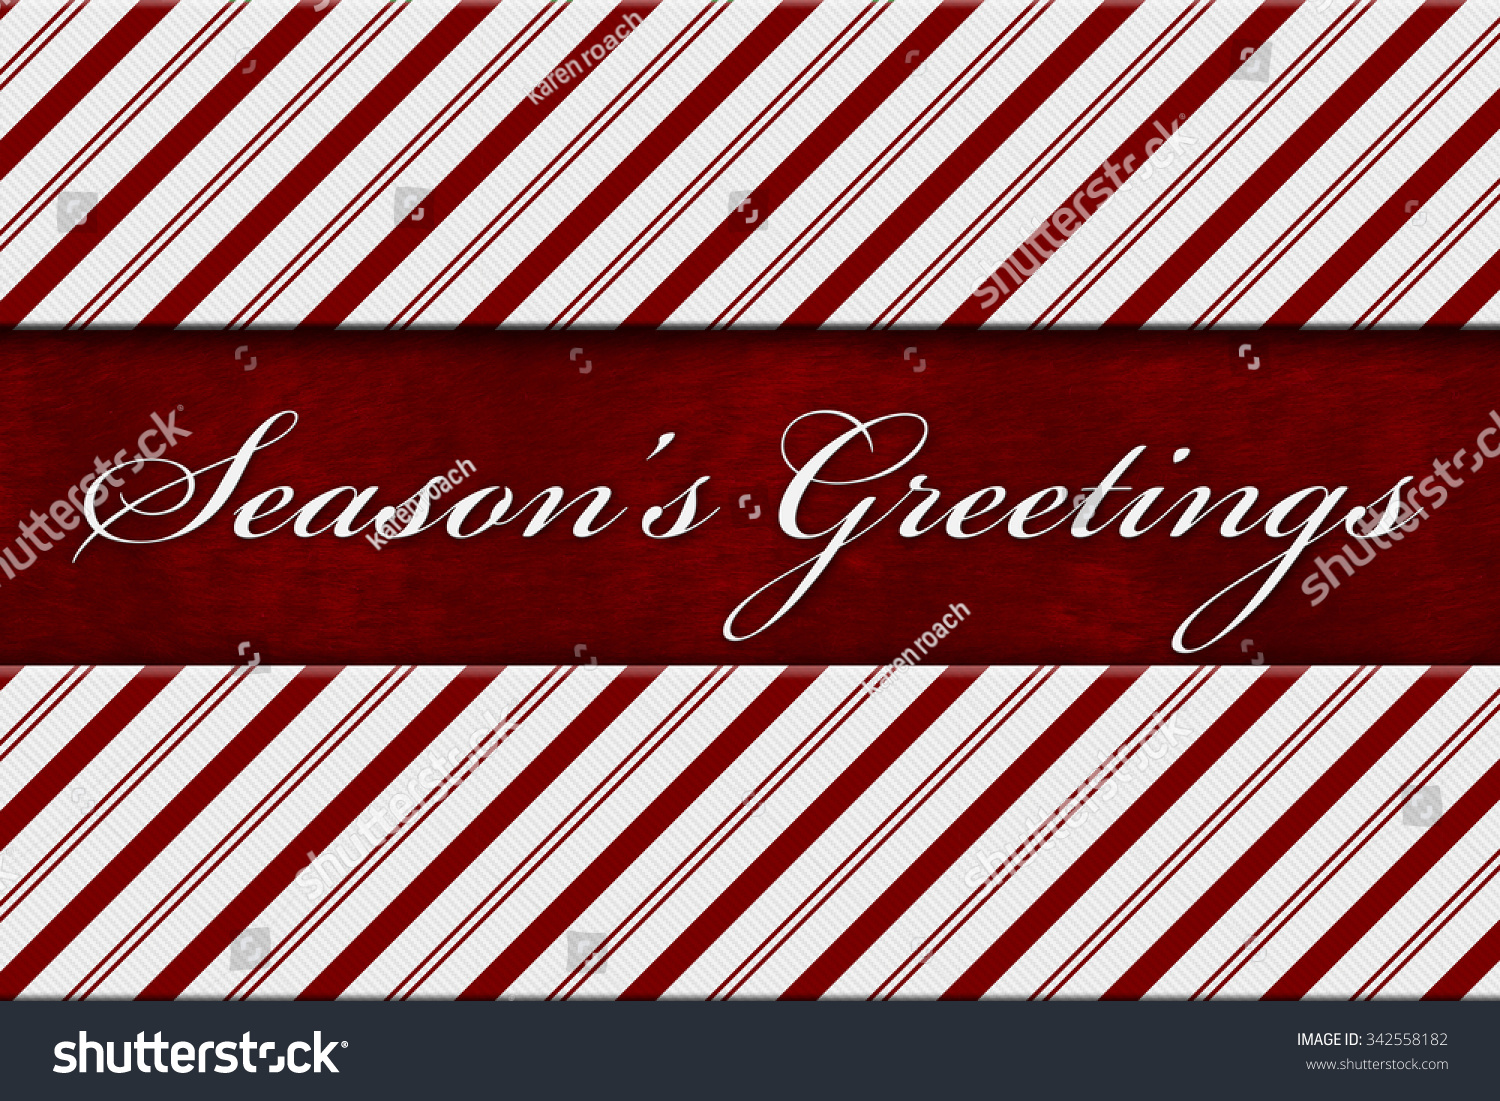 Seasons Greetings Message Red White Candy Stock Illustration